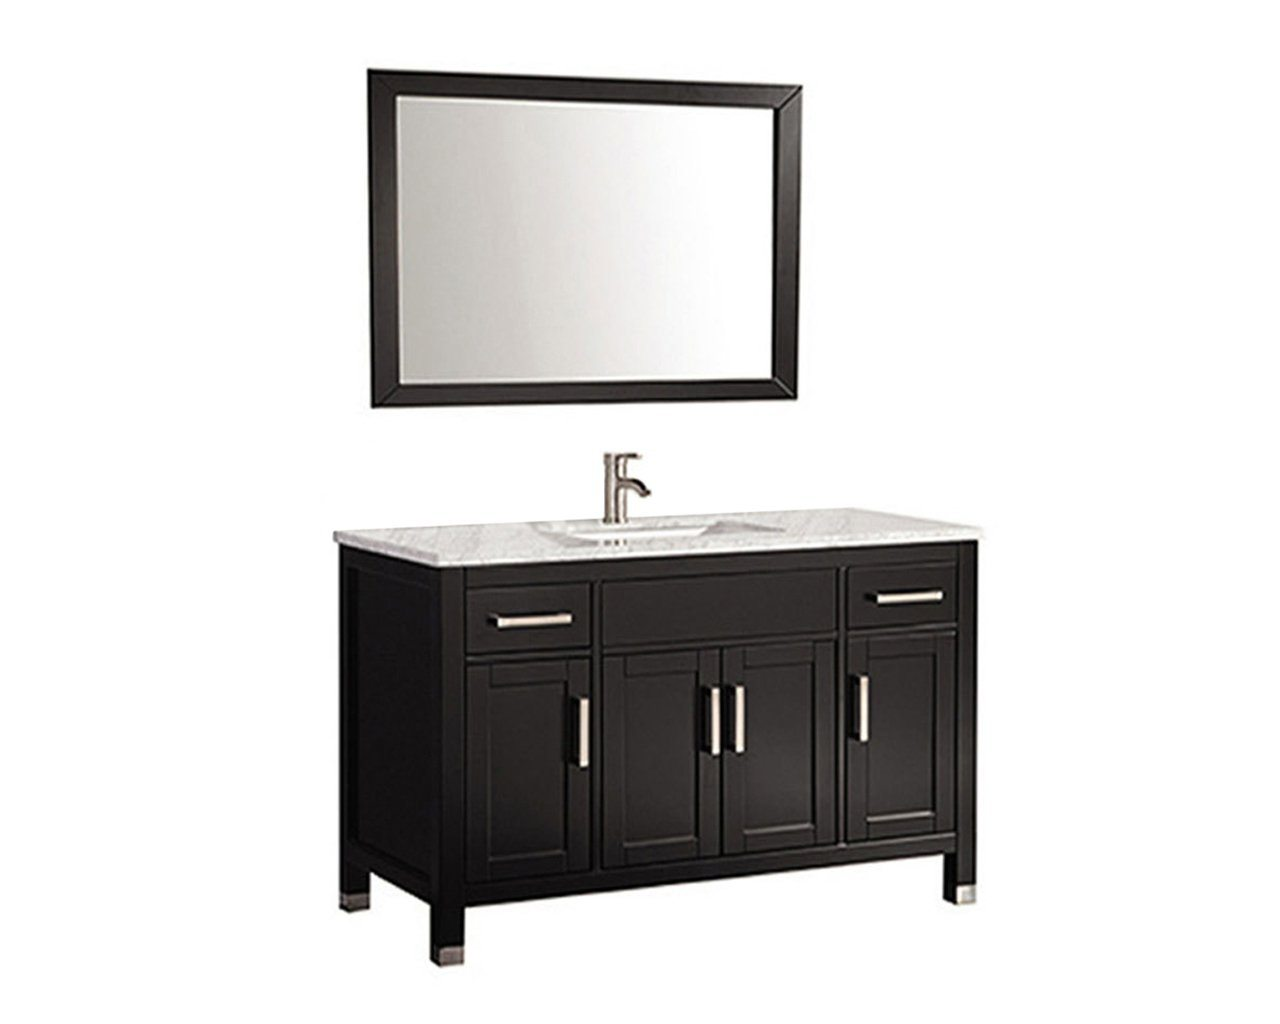 "Ricca 48"" Single Sink Vanity Set Espresso Furniture MTD Vanities"